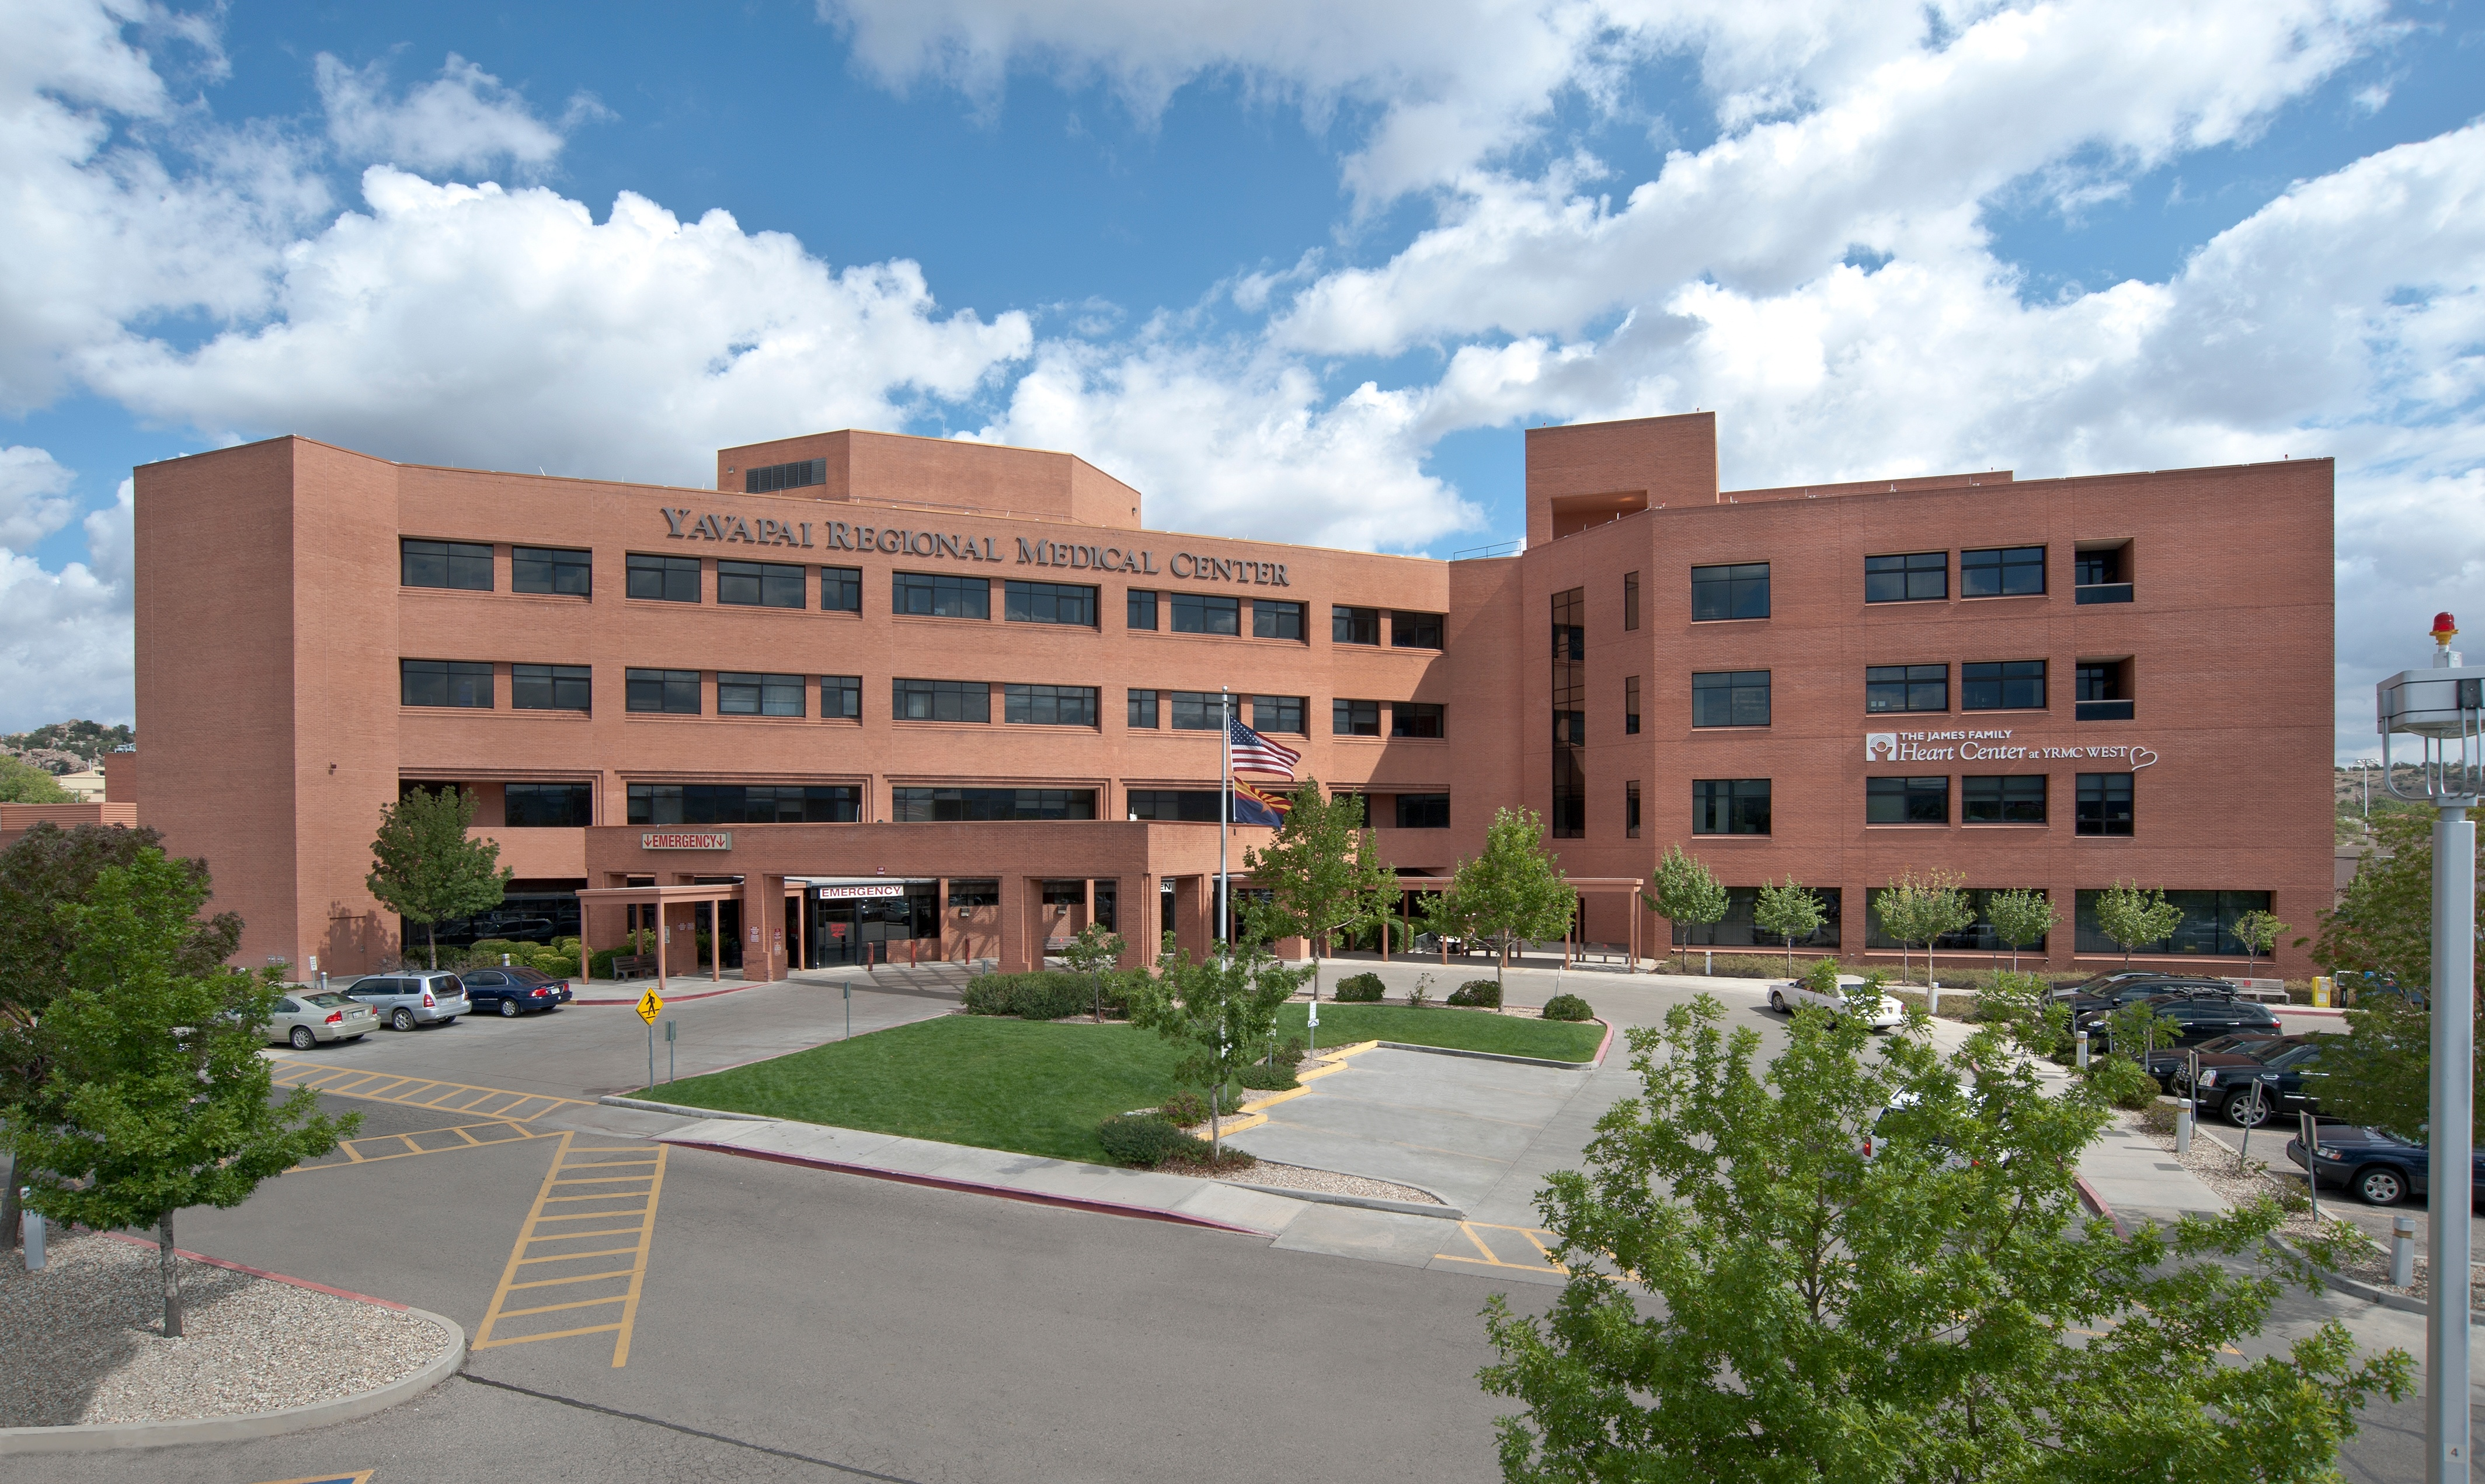 Community Focus: Yavapai Regional Medical Center